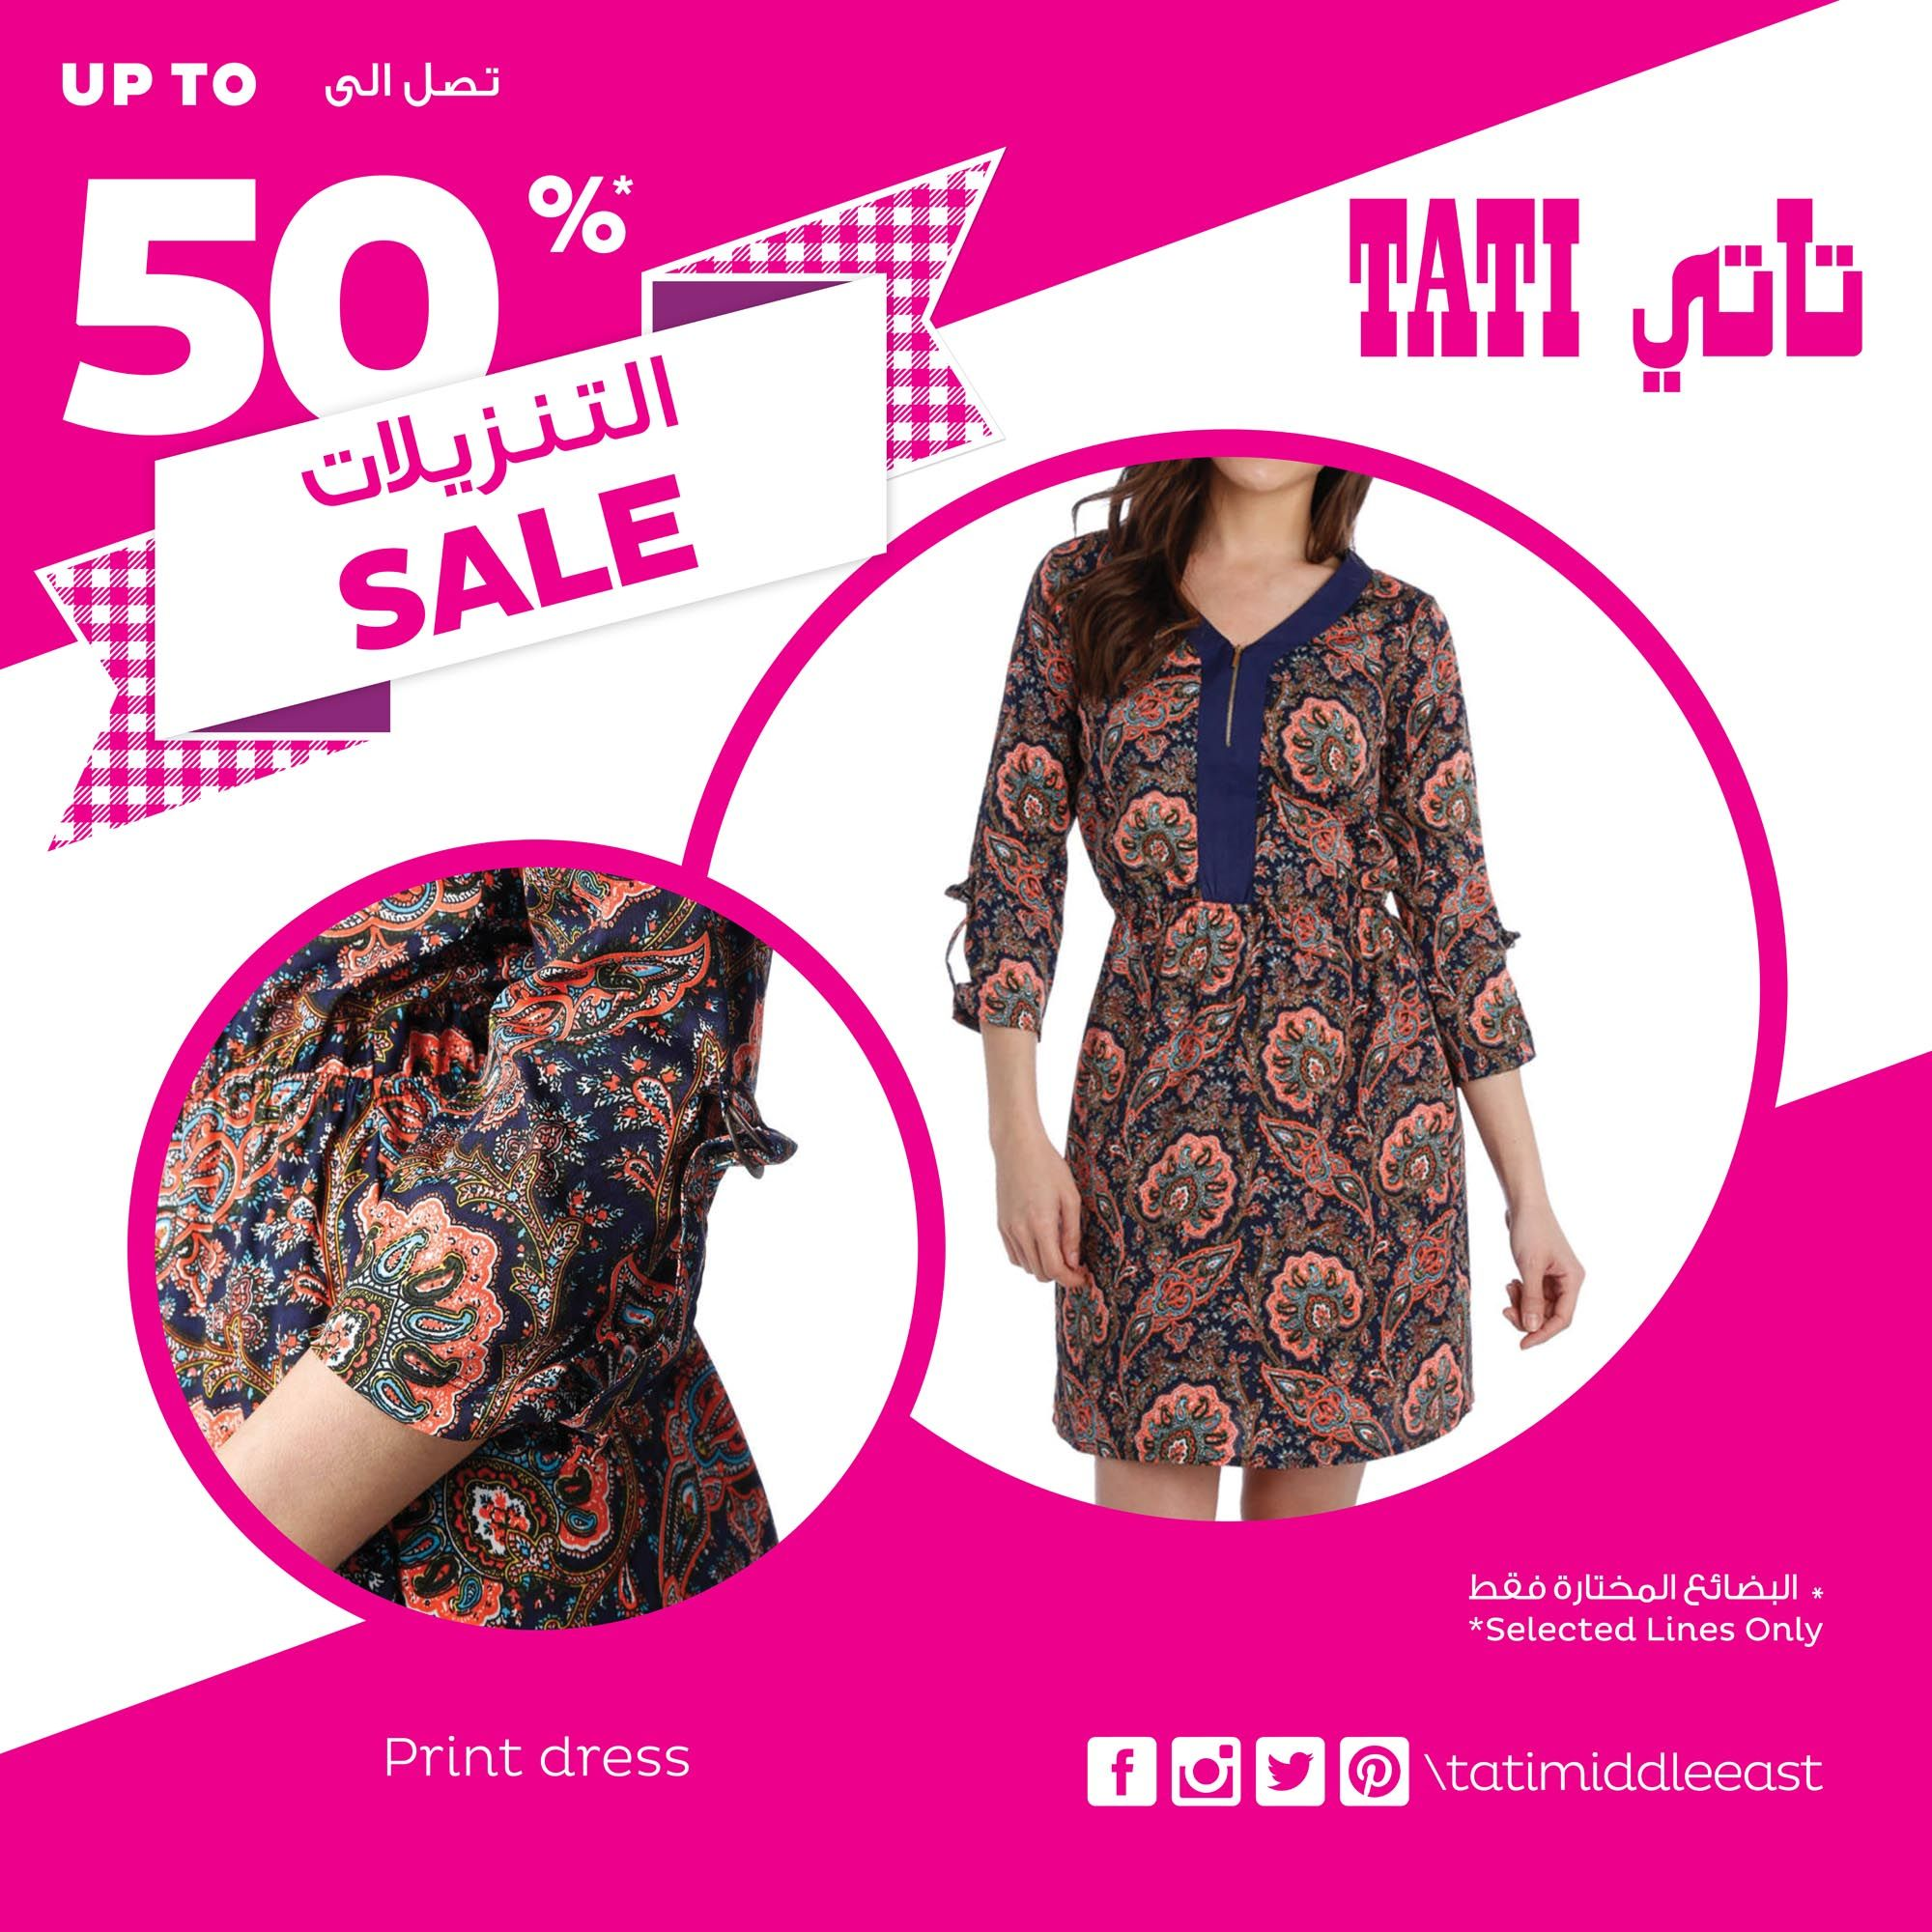 It's SALE - 50% Off on selected items at TATI! Hurry whilst stocks last! Check us out @ Mecca Mall -Ground Floor & Abdali Mall -2nd Floor!  Tel:06582 5457  Print Dress   #TATI #tatimiddleeast #dress #printed #Sale #offer 50% #Off #discount #promotion #nowopen #meccamall #Abdalimall #Amman #jordan #new #fashion #destination #Trend #woman #man #kids #home #shoes #accessories #btcfashion #Follow #Followme